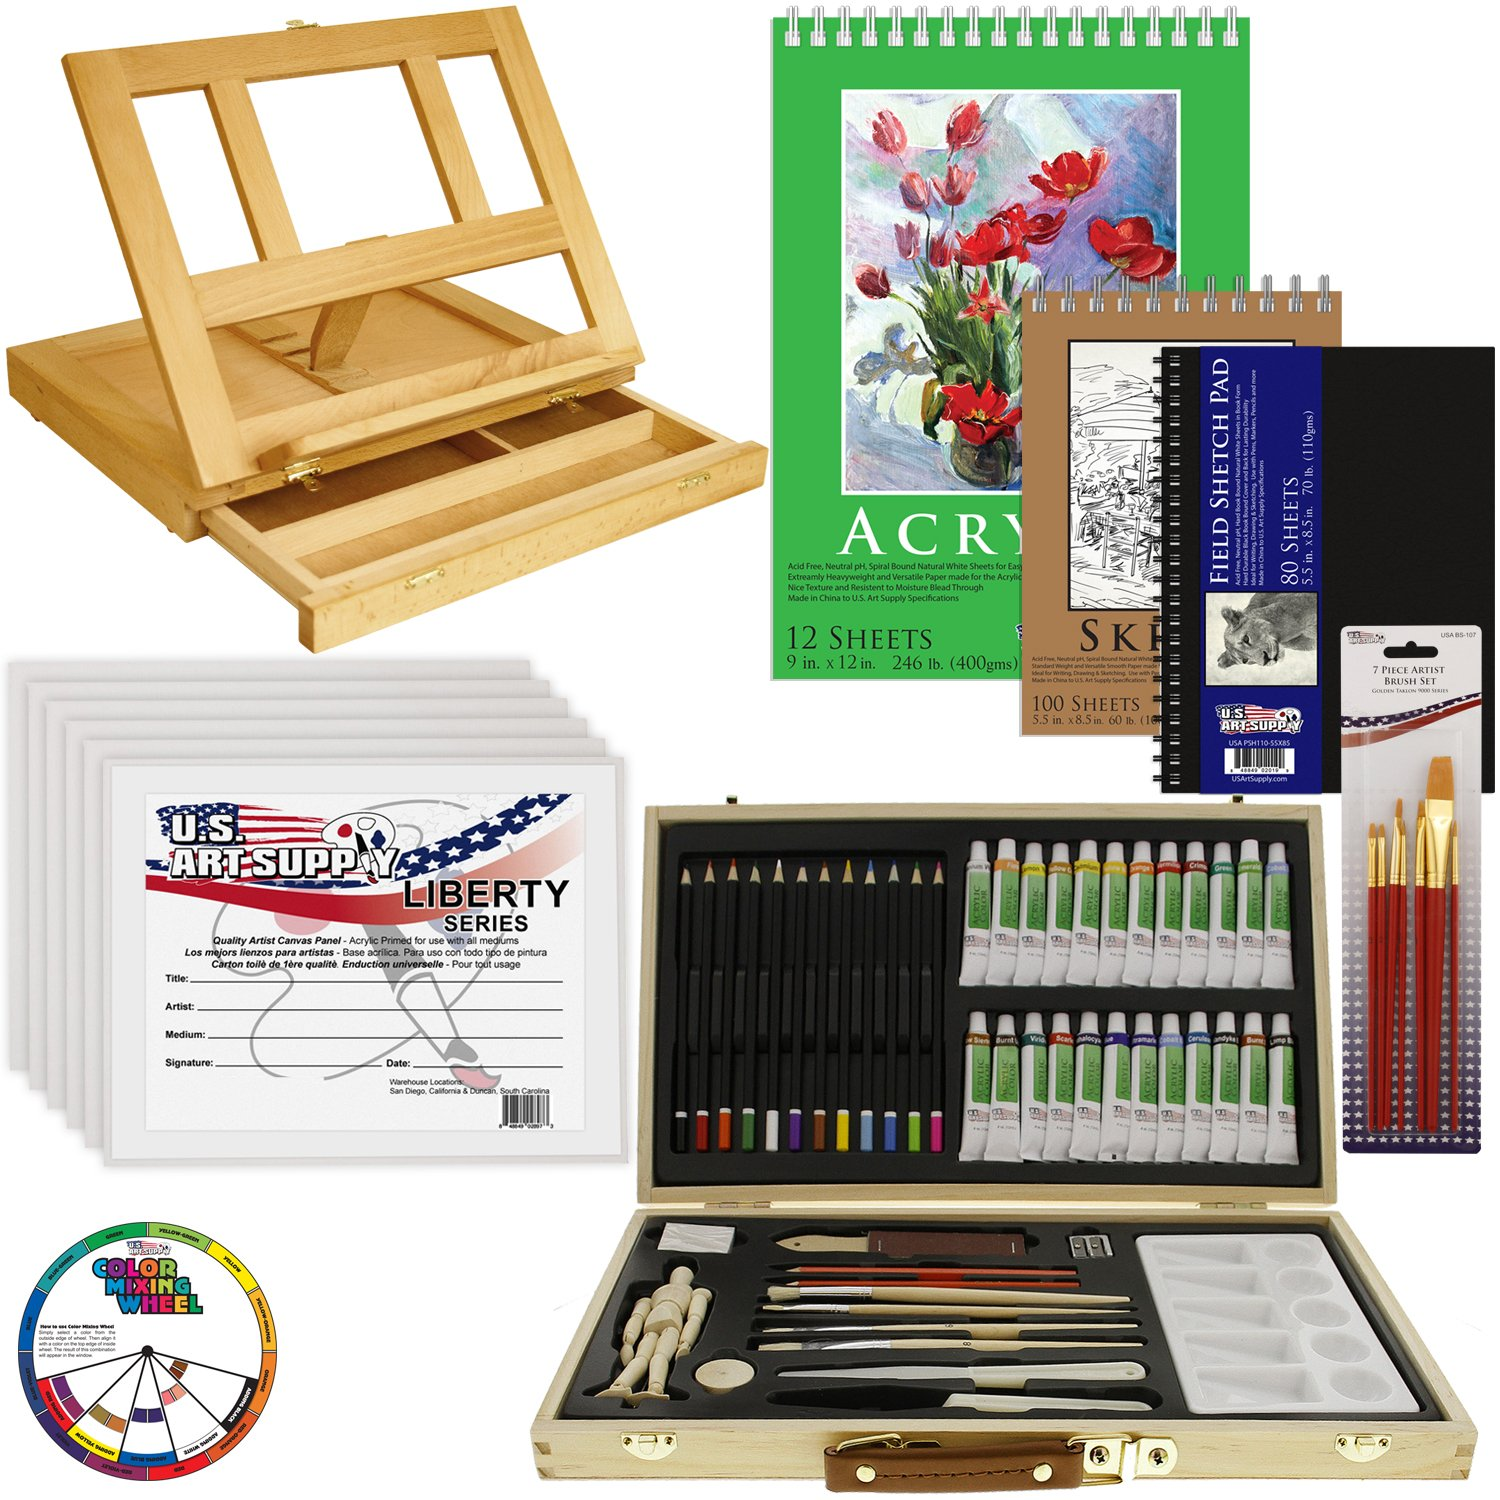 US Art Supply 68-Piece Custom Artist Acrylic Painting Set with, Wood Drawer Table Easel, 24-Tubes Acrylic Colors, 12 Colored Pencils, 2 Graphite Pencils, 9x12 Painting Paper Pad, 6-each 8x10 Canvas Panels, 100-Sheet Sketch Pad, 80-Page Hardbound Sketchbook